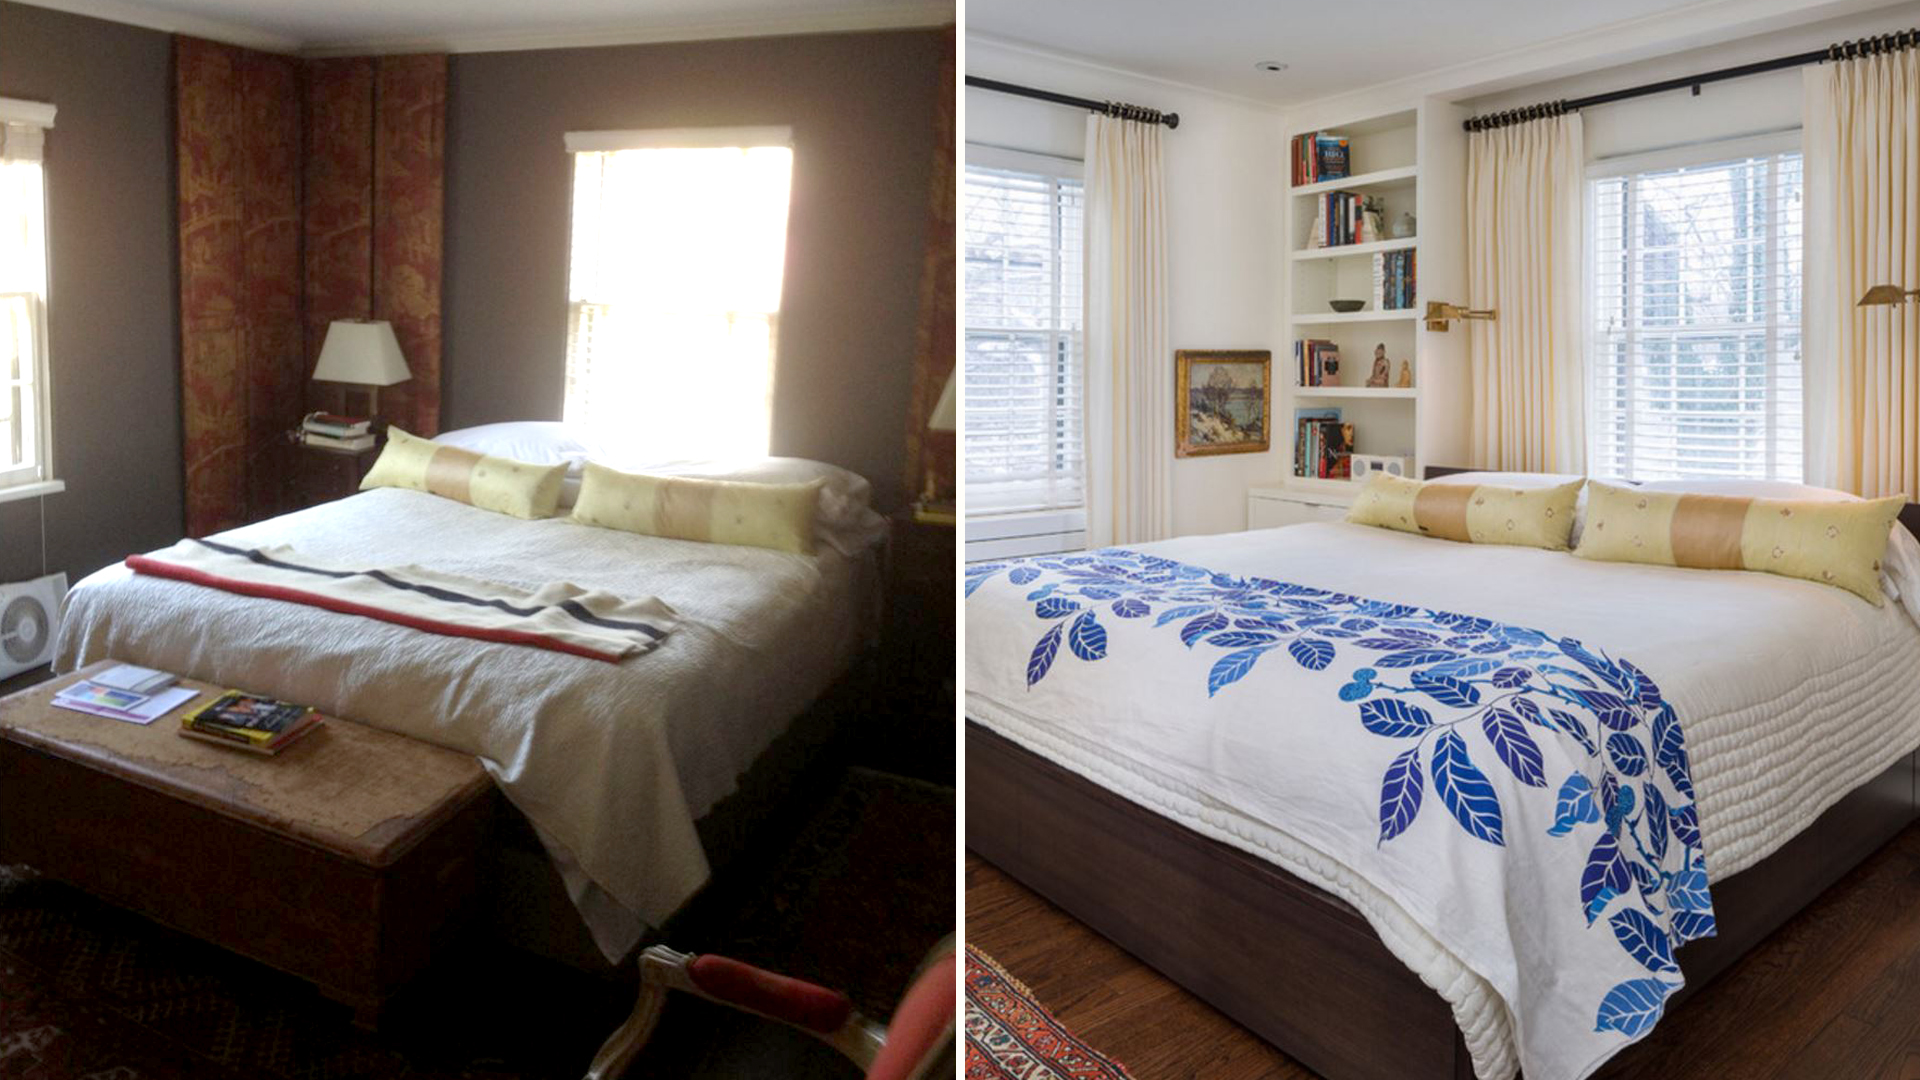 Bedroom Remodel Before And After - Bedroom Ideas